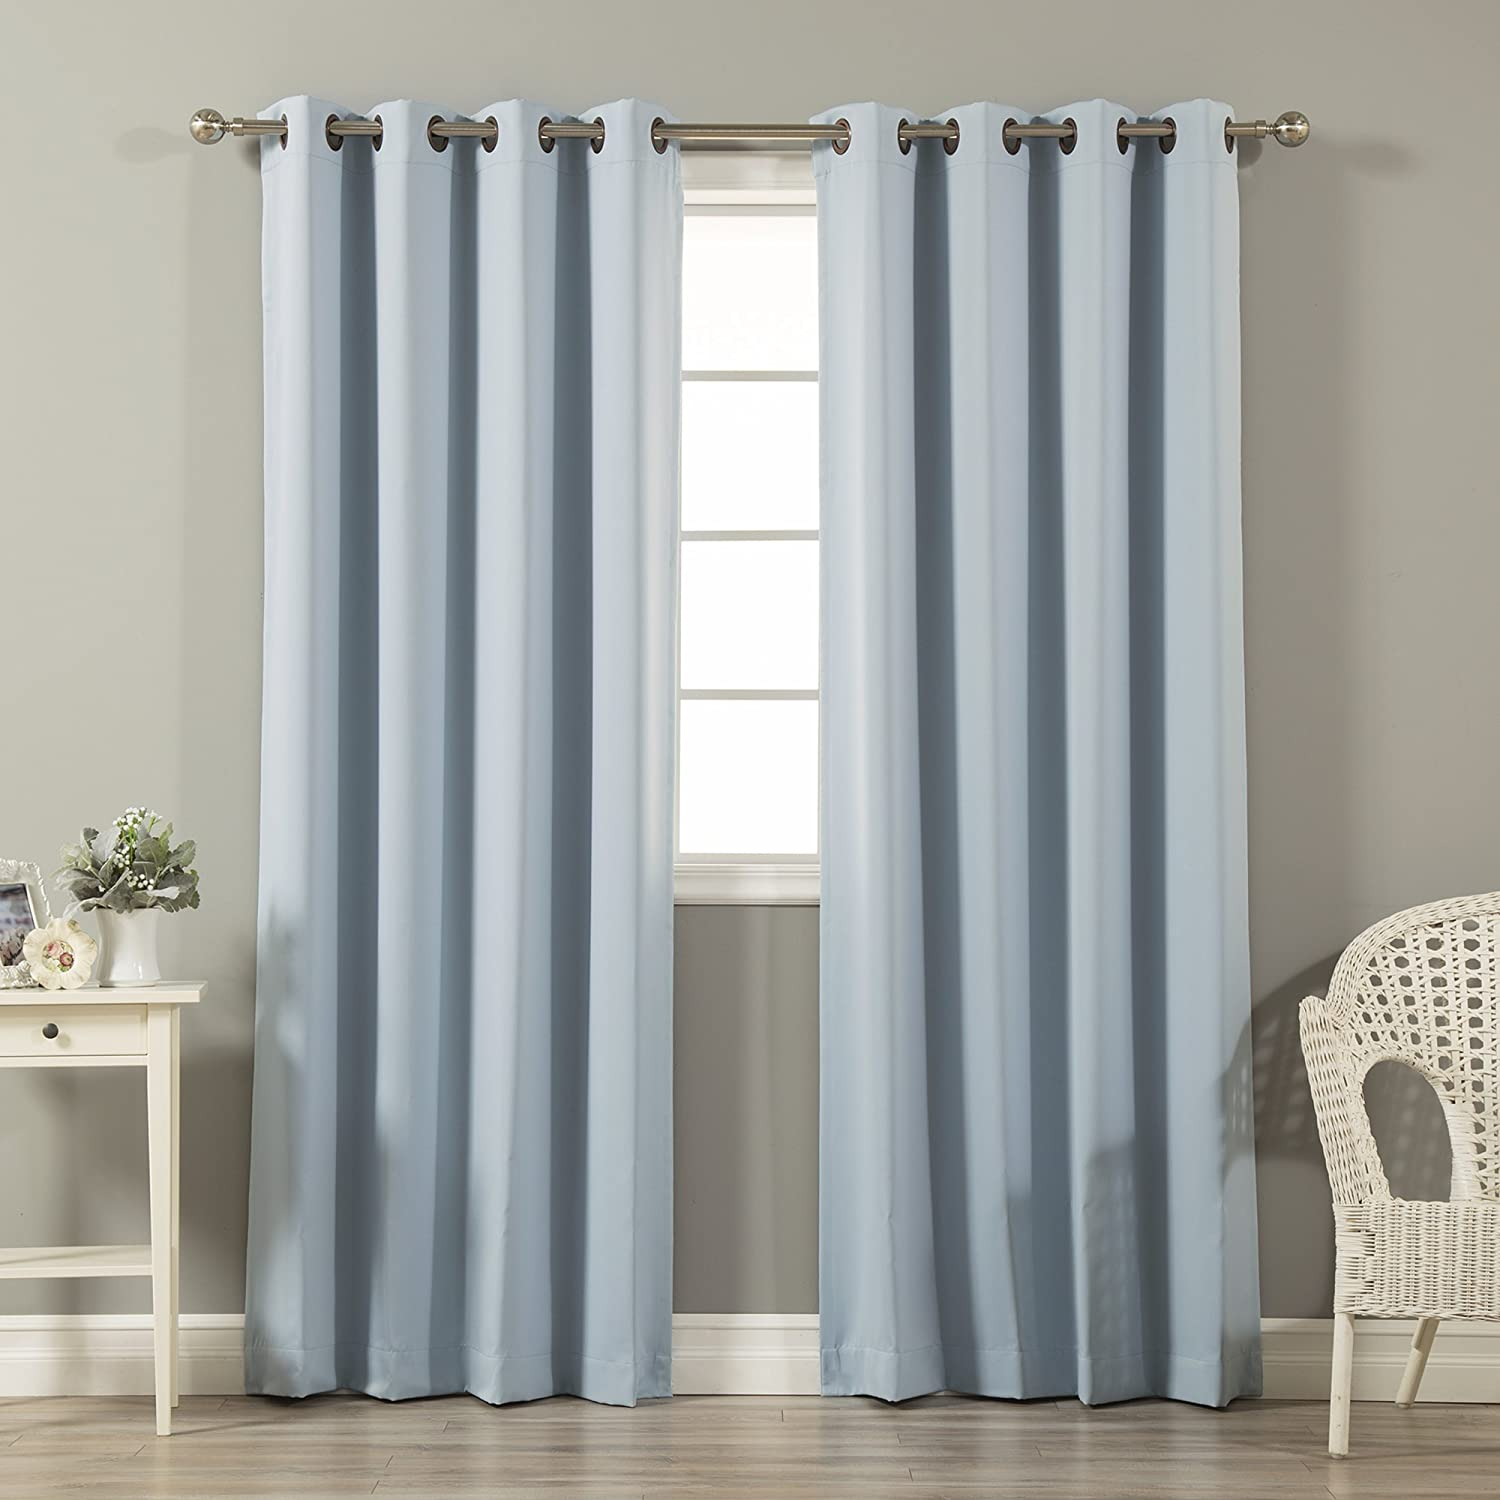 Best Home Fashion Basic Thermal Insulated Blackout Curtains - Antique Bronze Grommet Top - Sky Blue